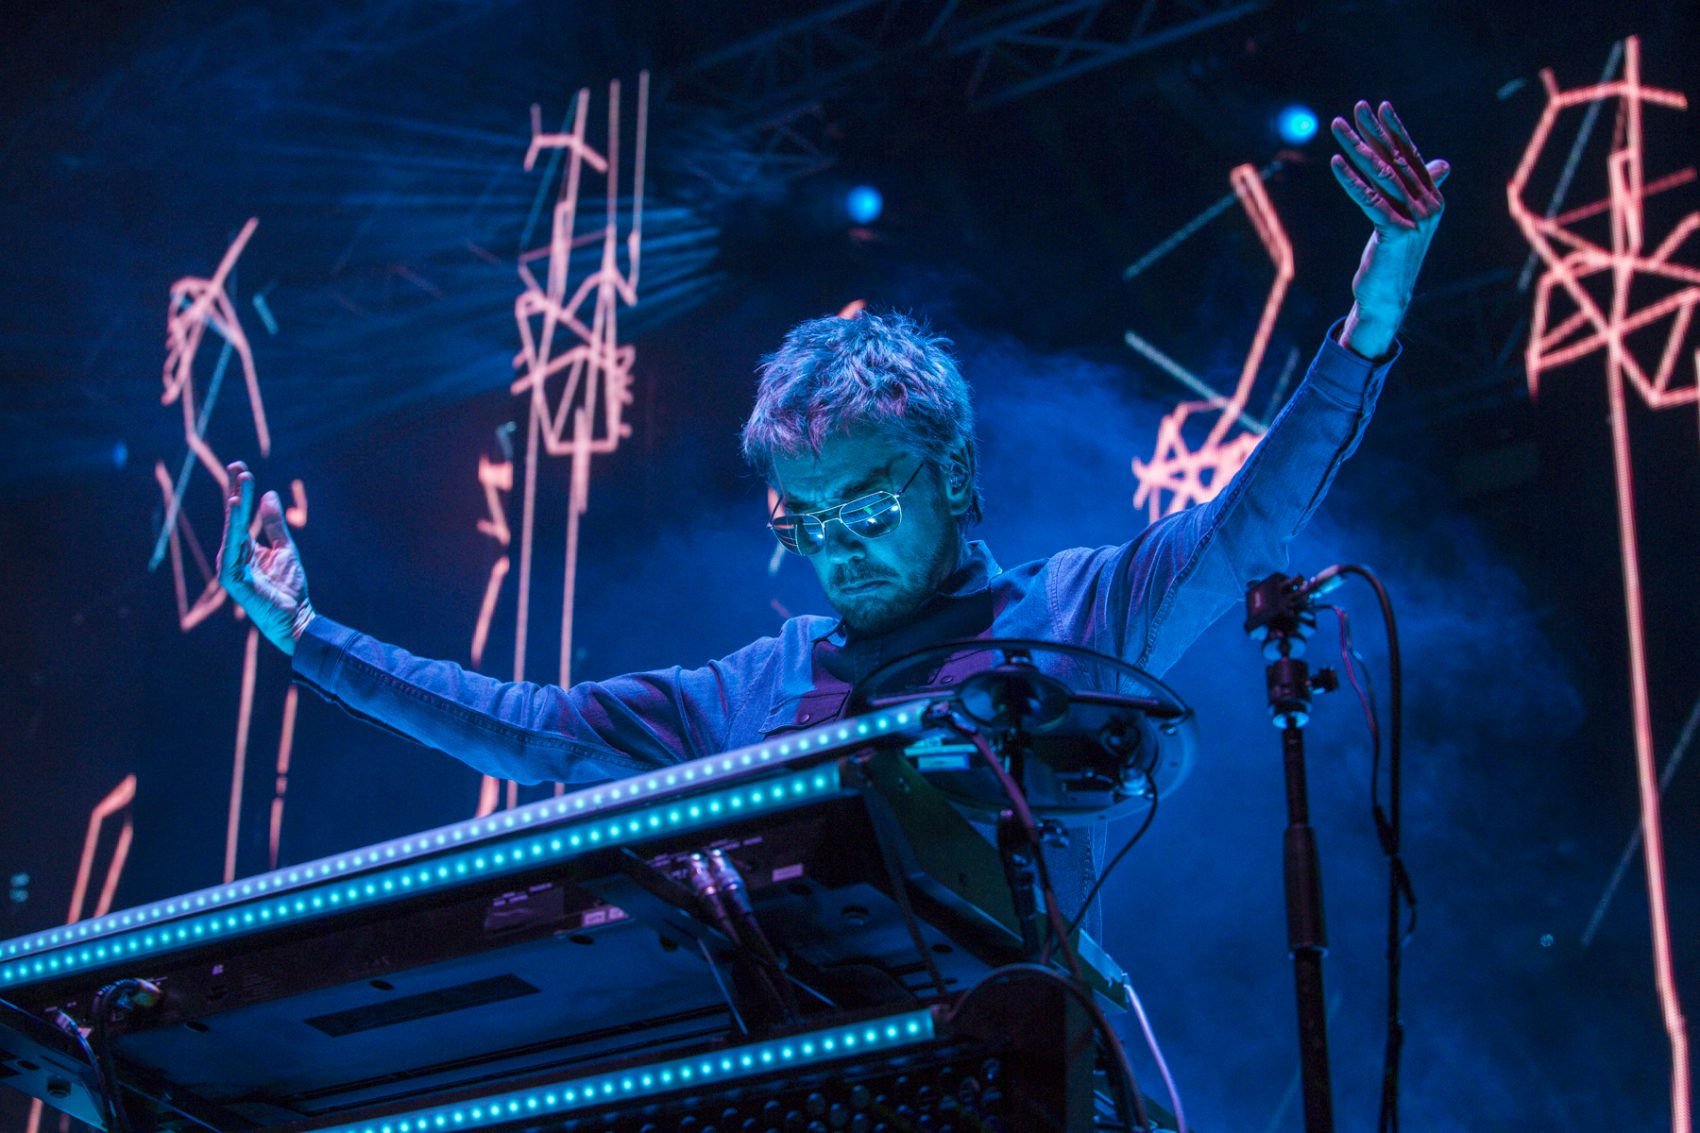 French musician and performer Jean-Michel Jarre in concert at the Dead Sea. (Courtesy Erik Voake)